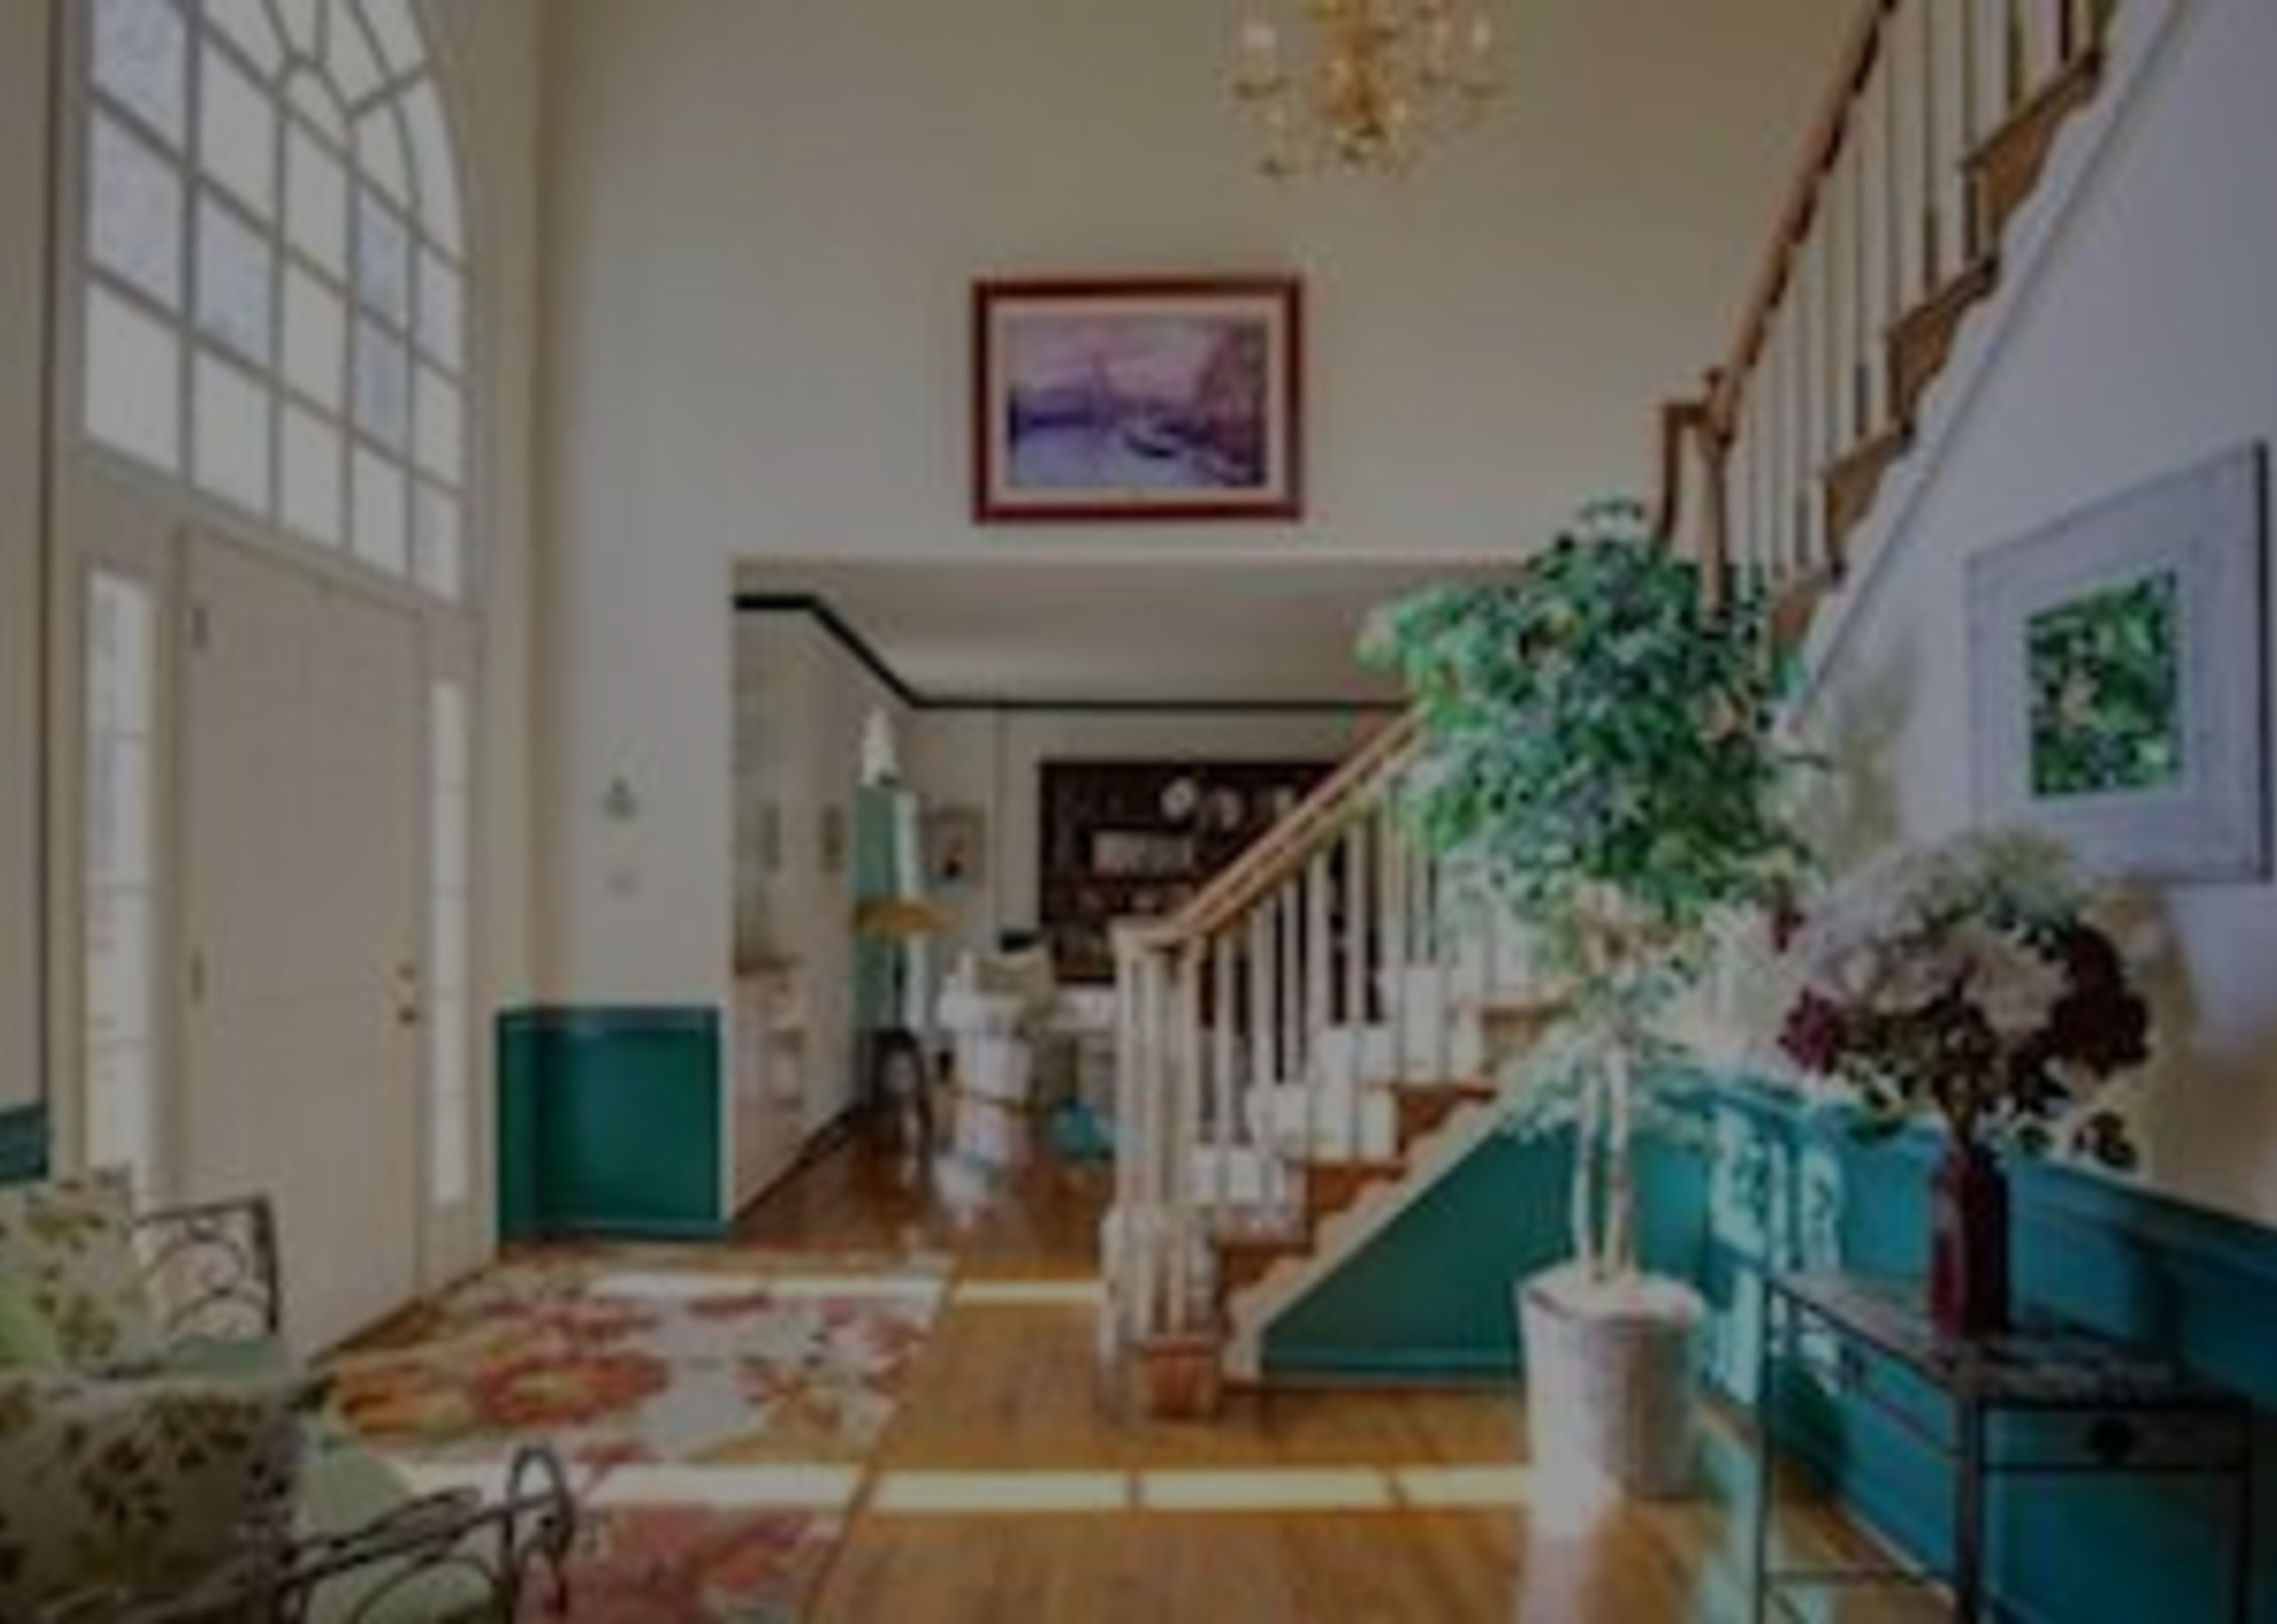 Open House | 1/21 in Purcellville